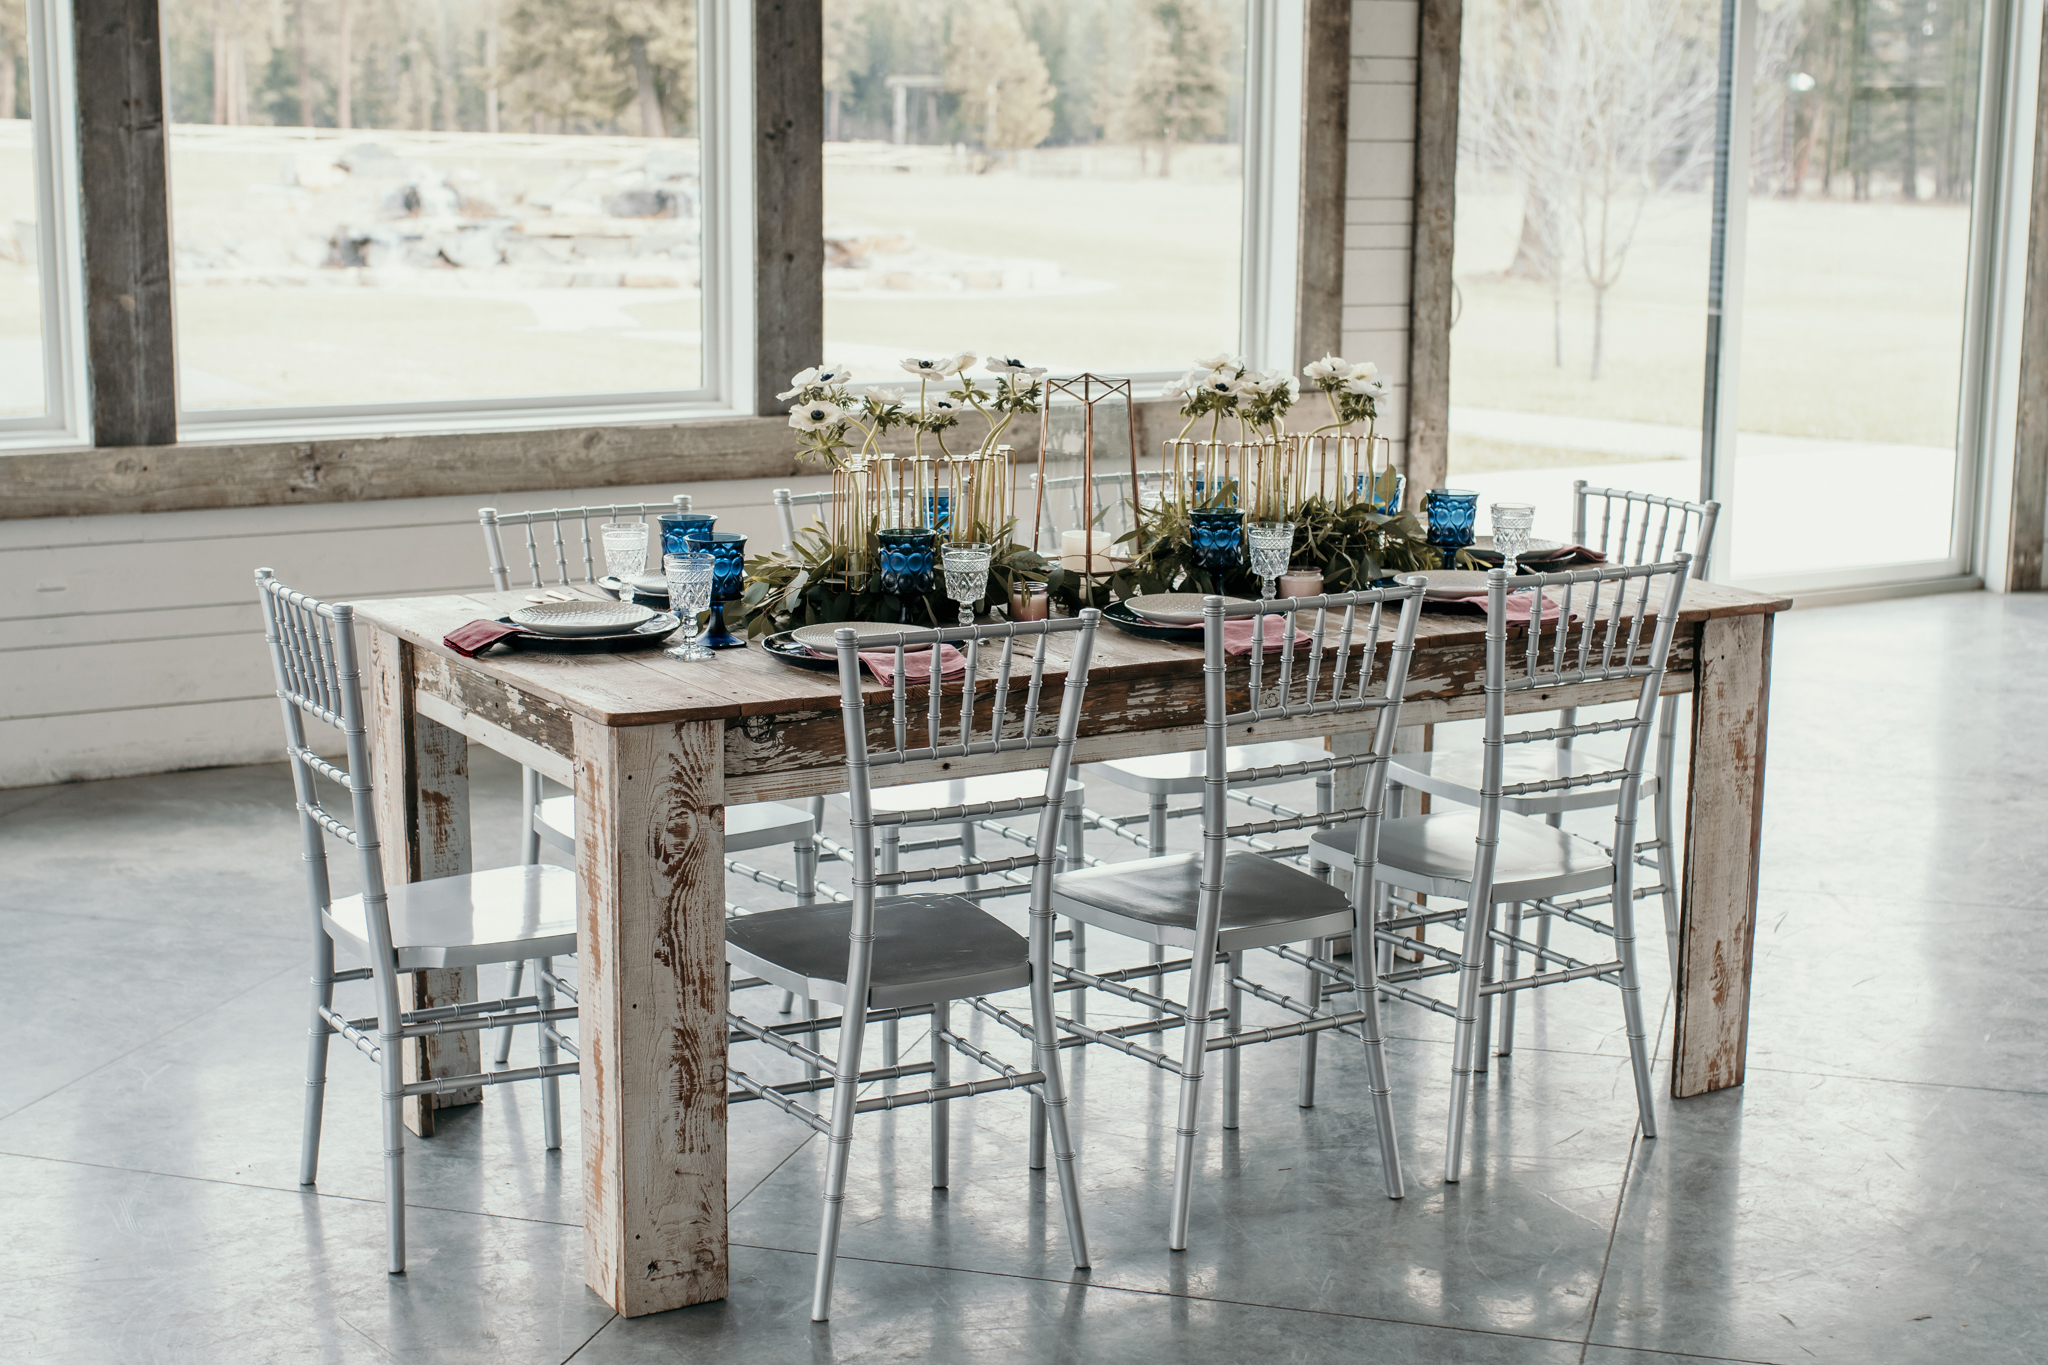 010 Jewel Tone Wedding Styled Shoot_Silver Knot_Montana Wedding Planner_Montana Wedding Photographer_Montana Wedding Videography_Honeybee Weddings-0405.jpg